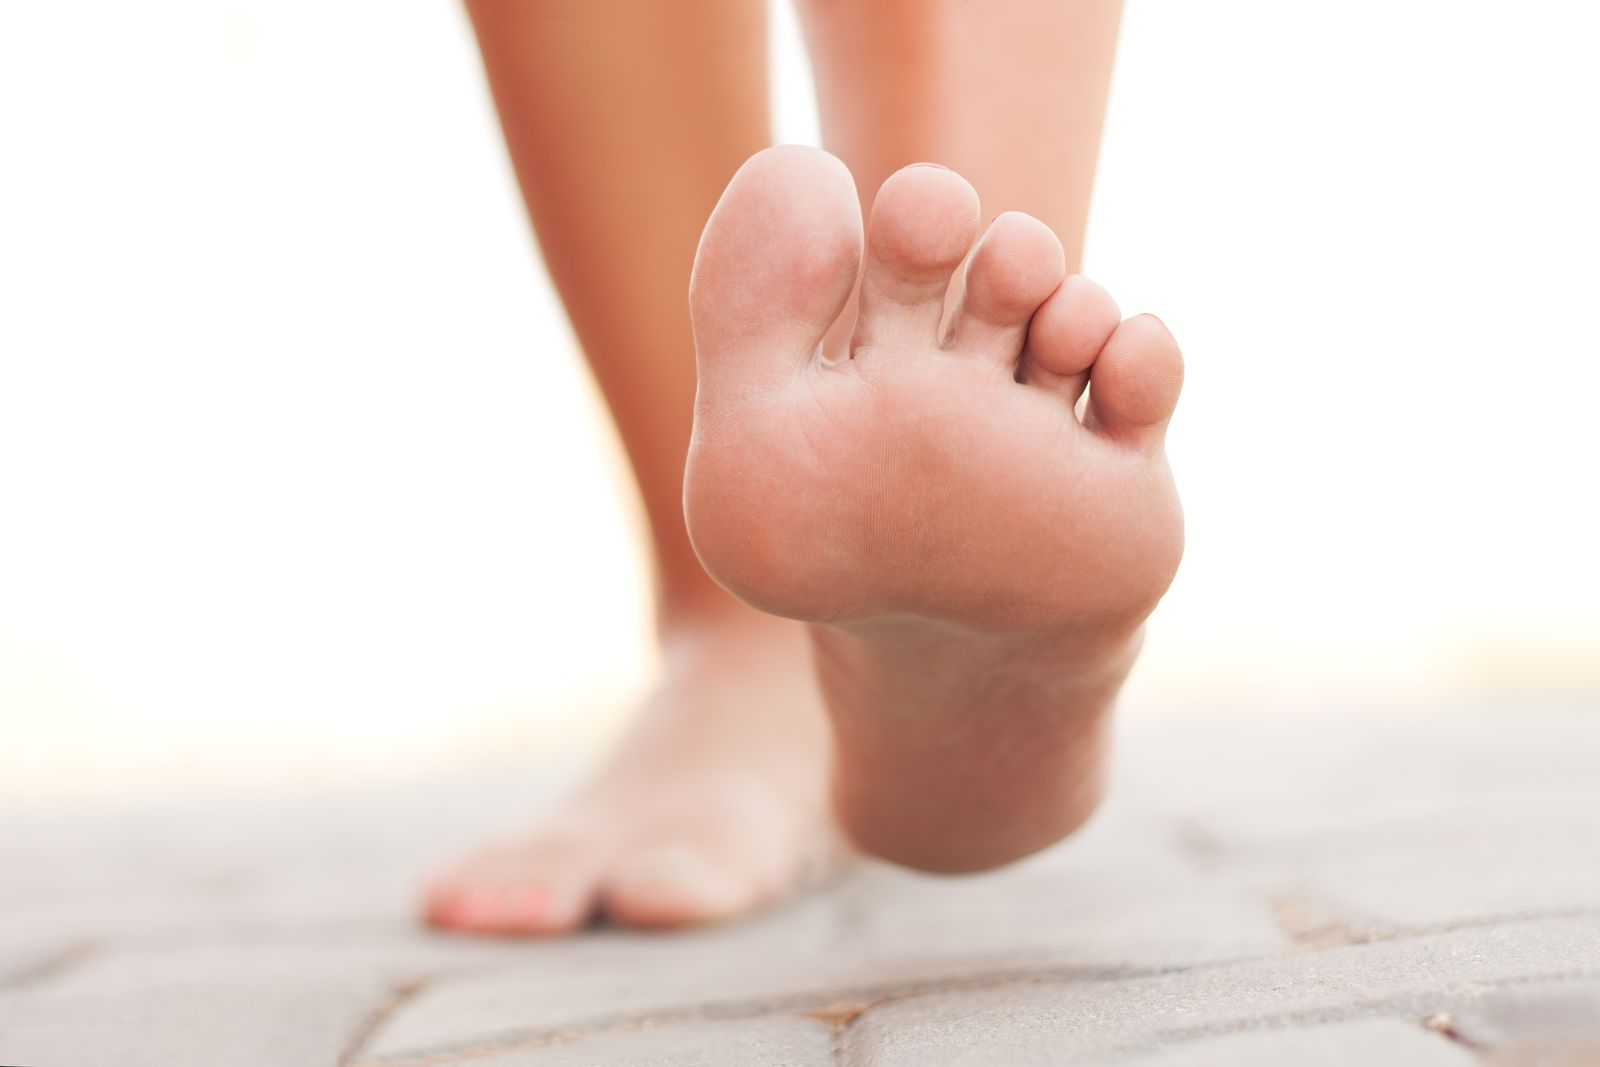 Bare feet on your yoga mat could be a dangerous combo, unless you practice proper cleaning techniques